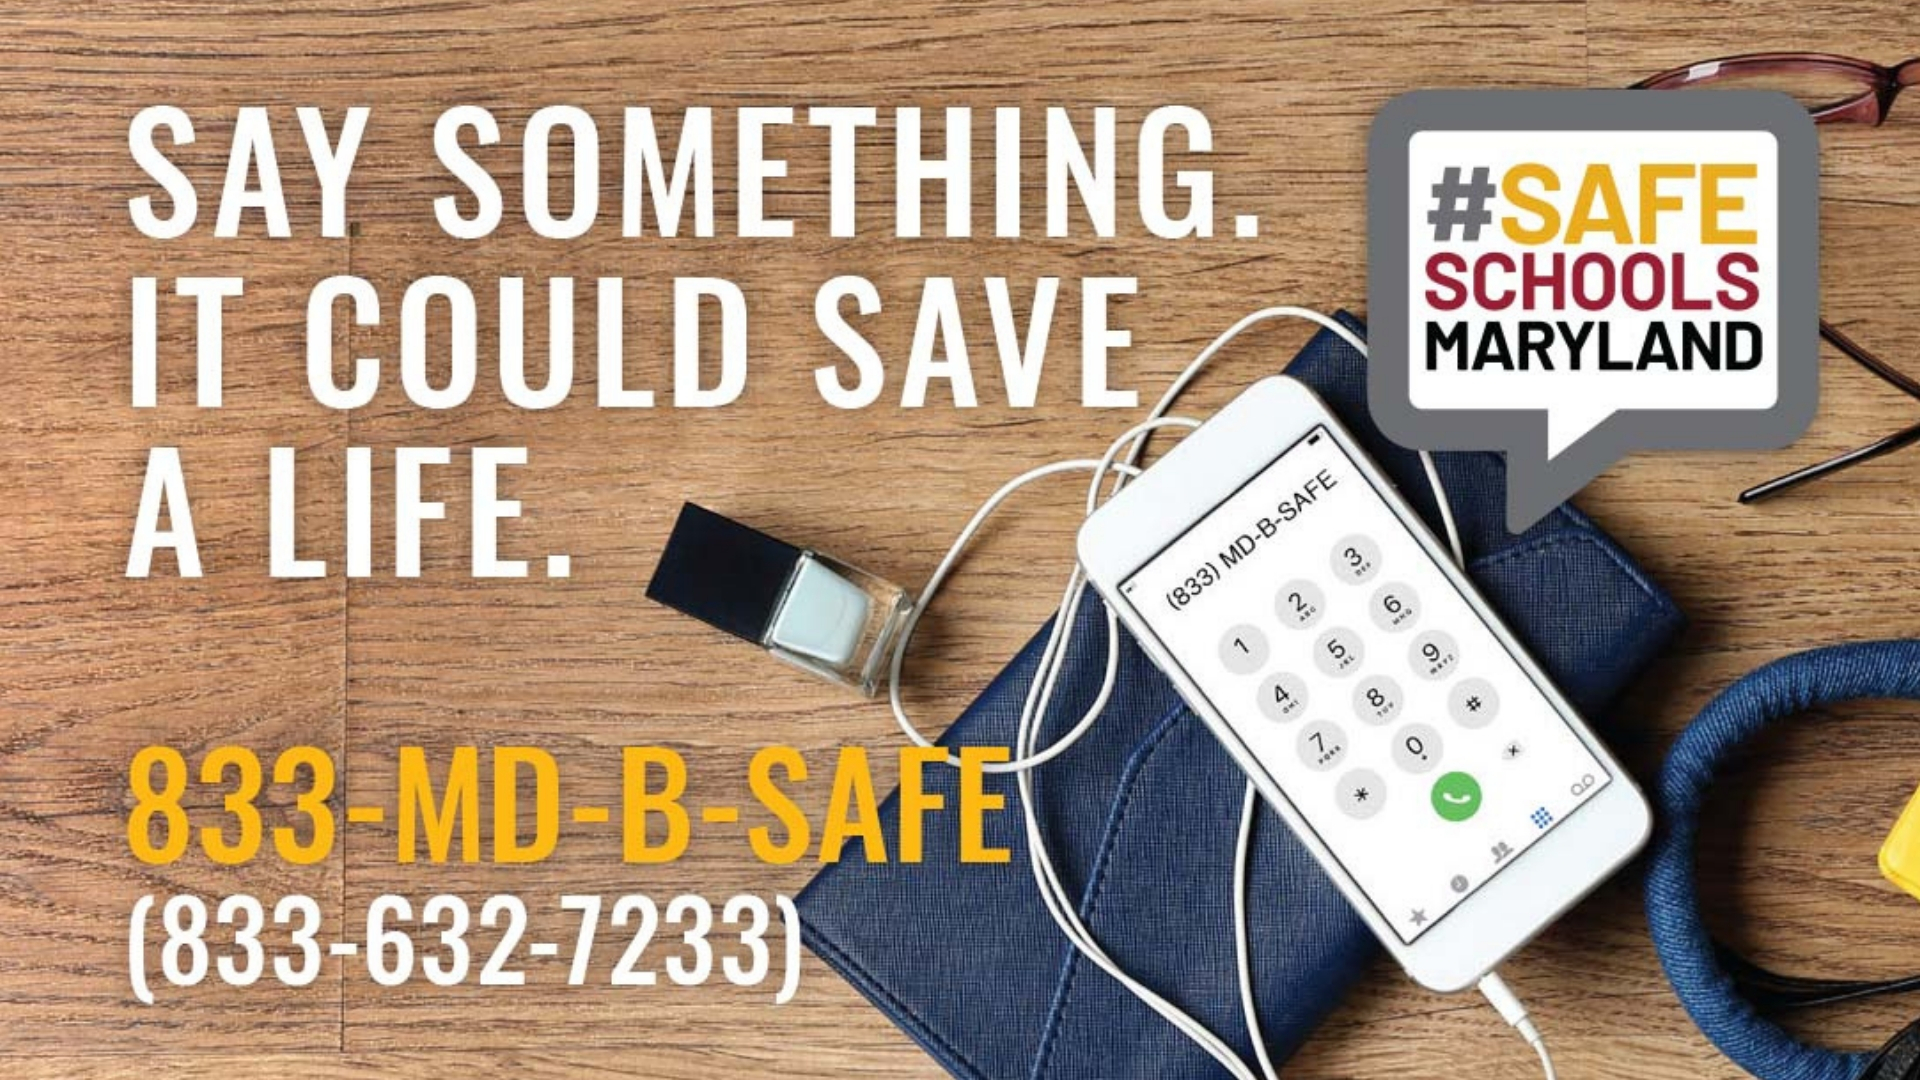 Maryland Emergency Management Agency Tool Tip Repair A Circuit Board Skool Governor Larry Hogan Announces Safe Schools School Safety Initiative